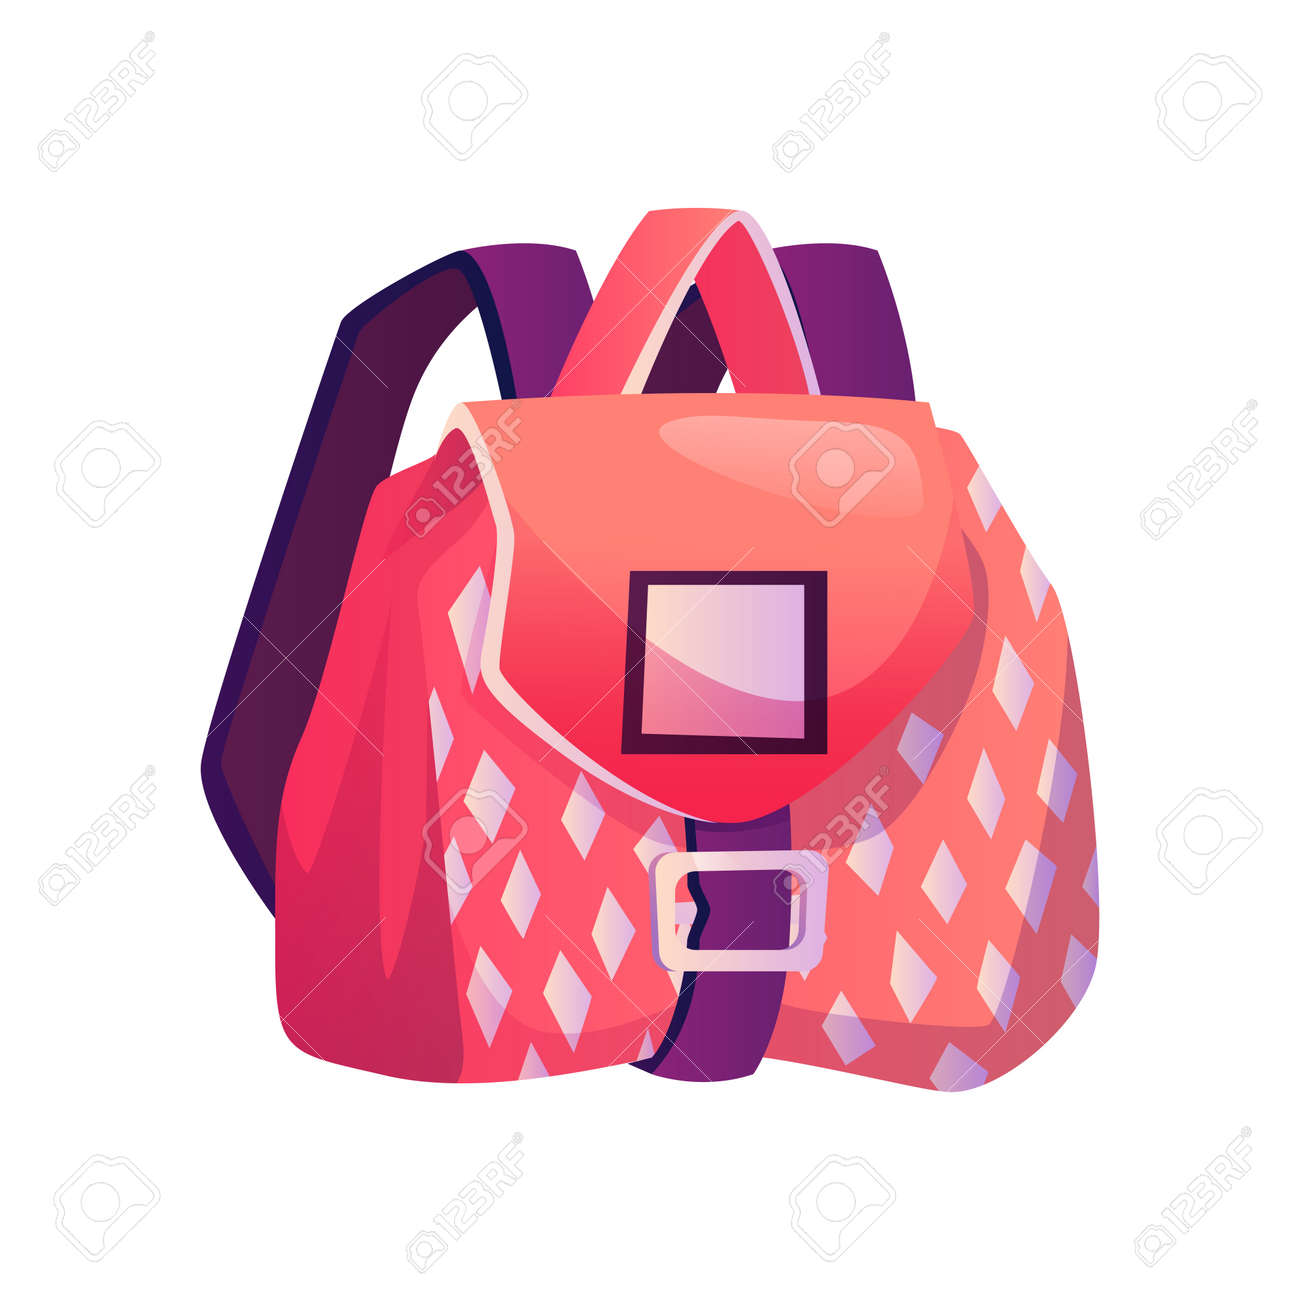 Satchel for girl with pockets and geometric print. Isolated girlish bag with straps. Flexible textile bag for personal belonging, fabric backpack. Baggage with clasp. Flat cartoon style vector - 171589786